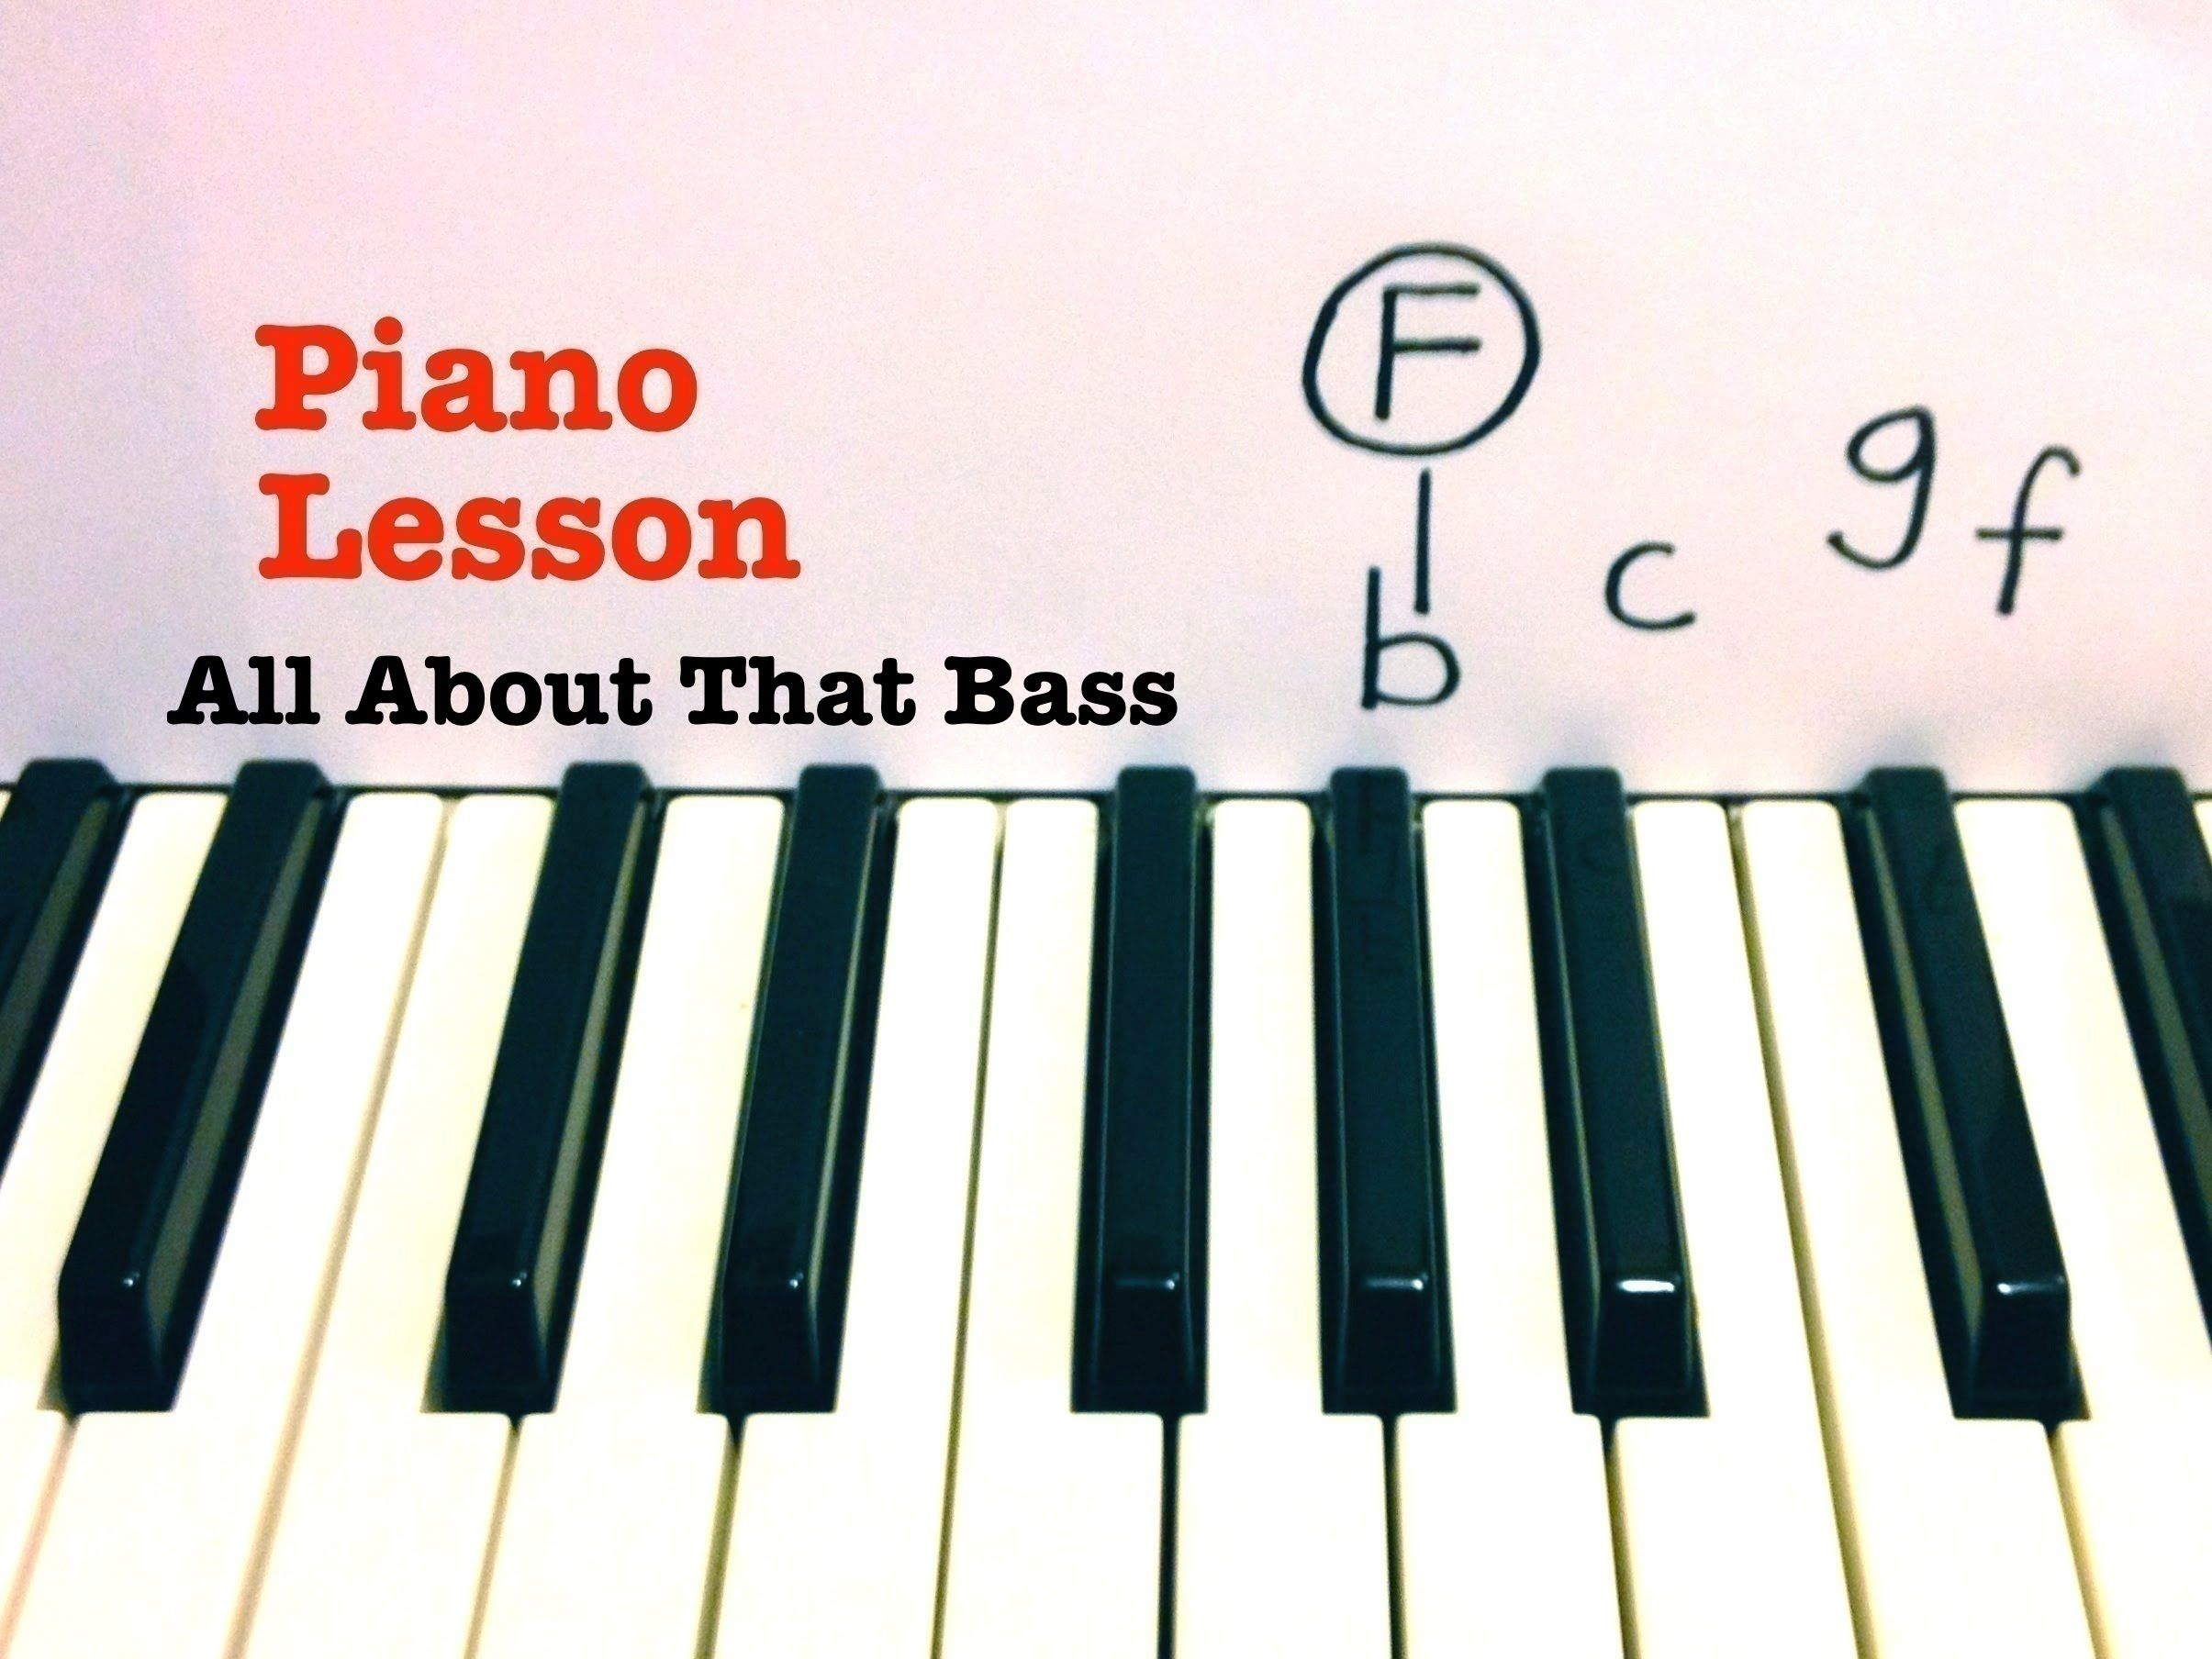 All about that bass piano lesson tutorial meghan trainor all about that bass piano lesson tutorial meghan trainor baditri Image collections